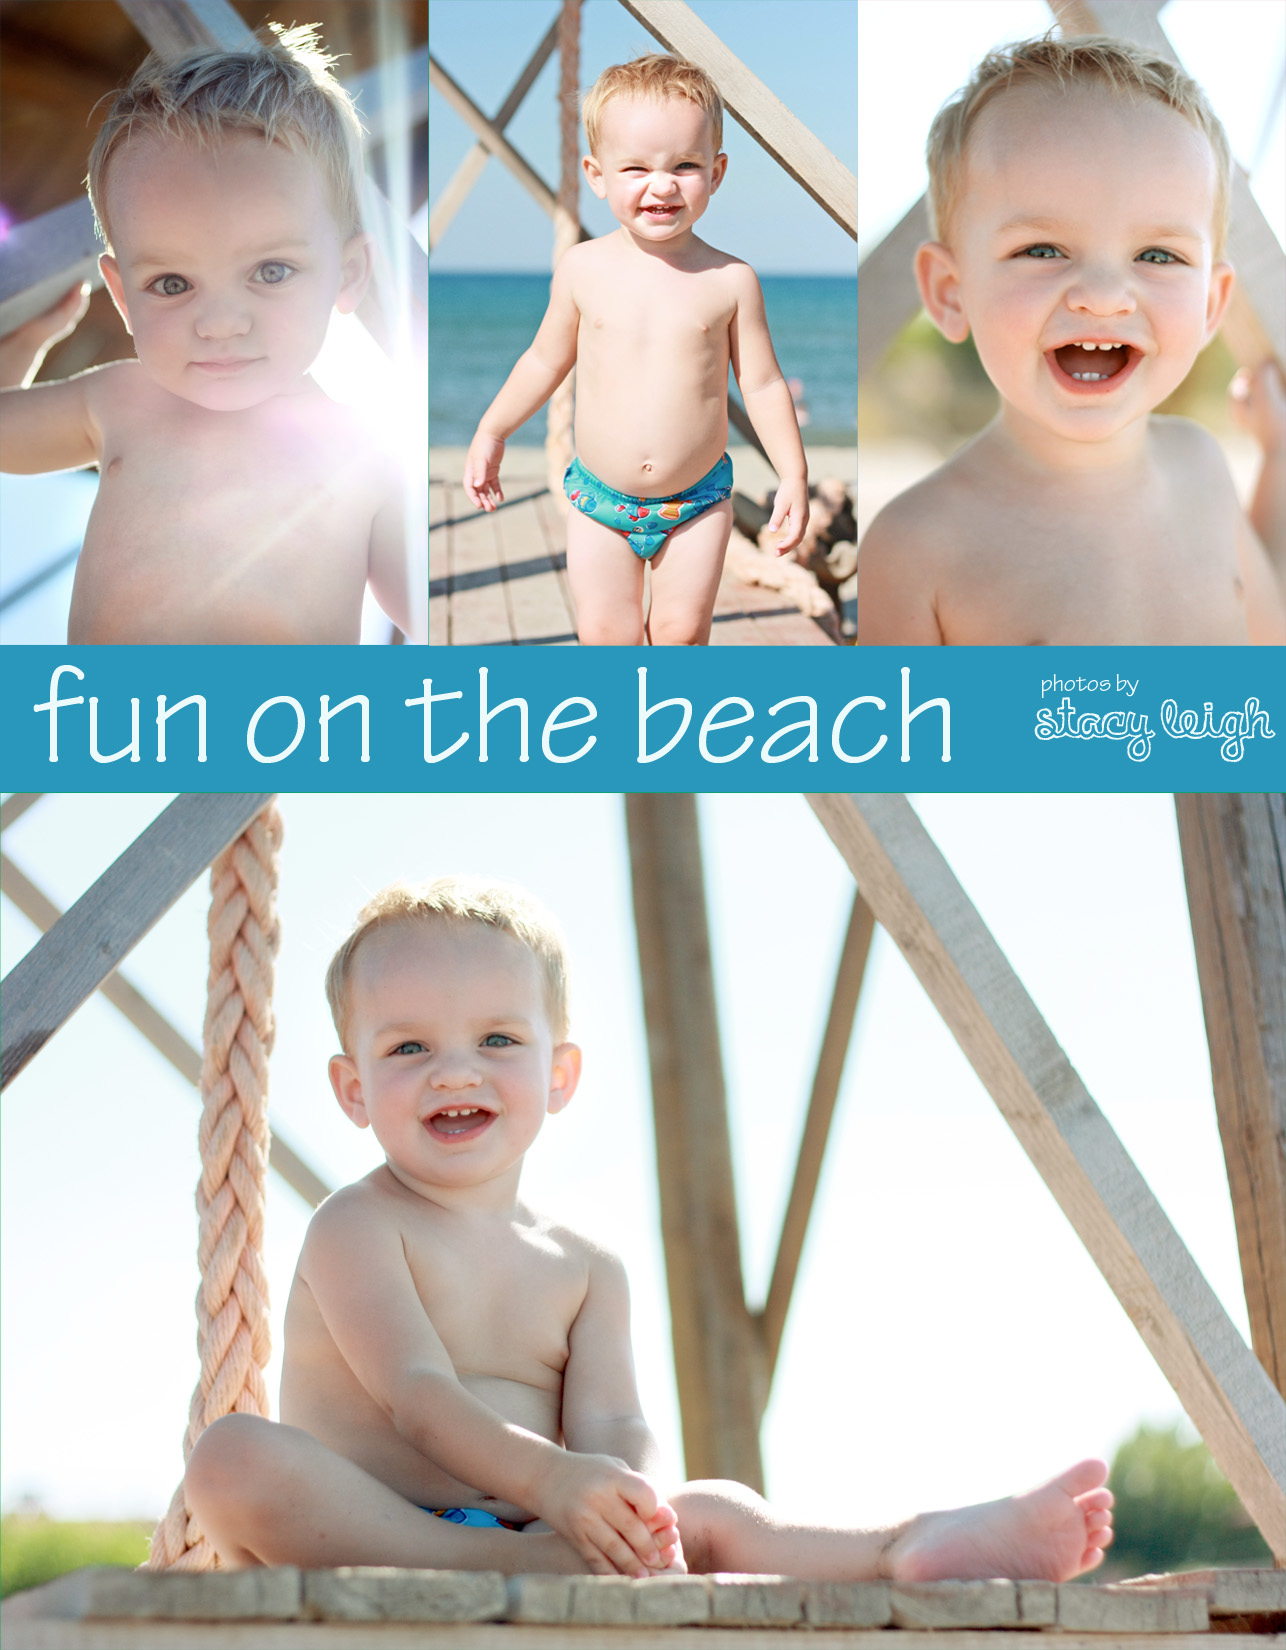 pictures of my toddler on the beach combined into a collage